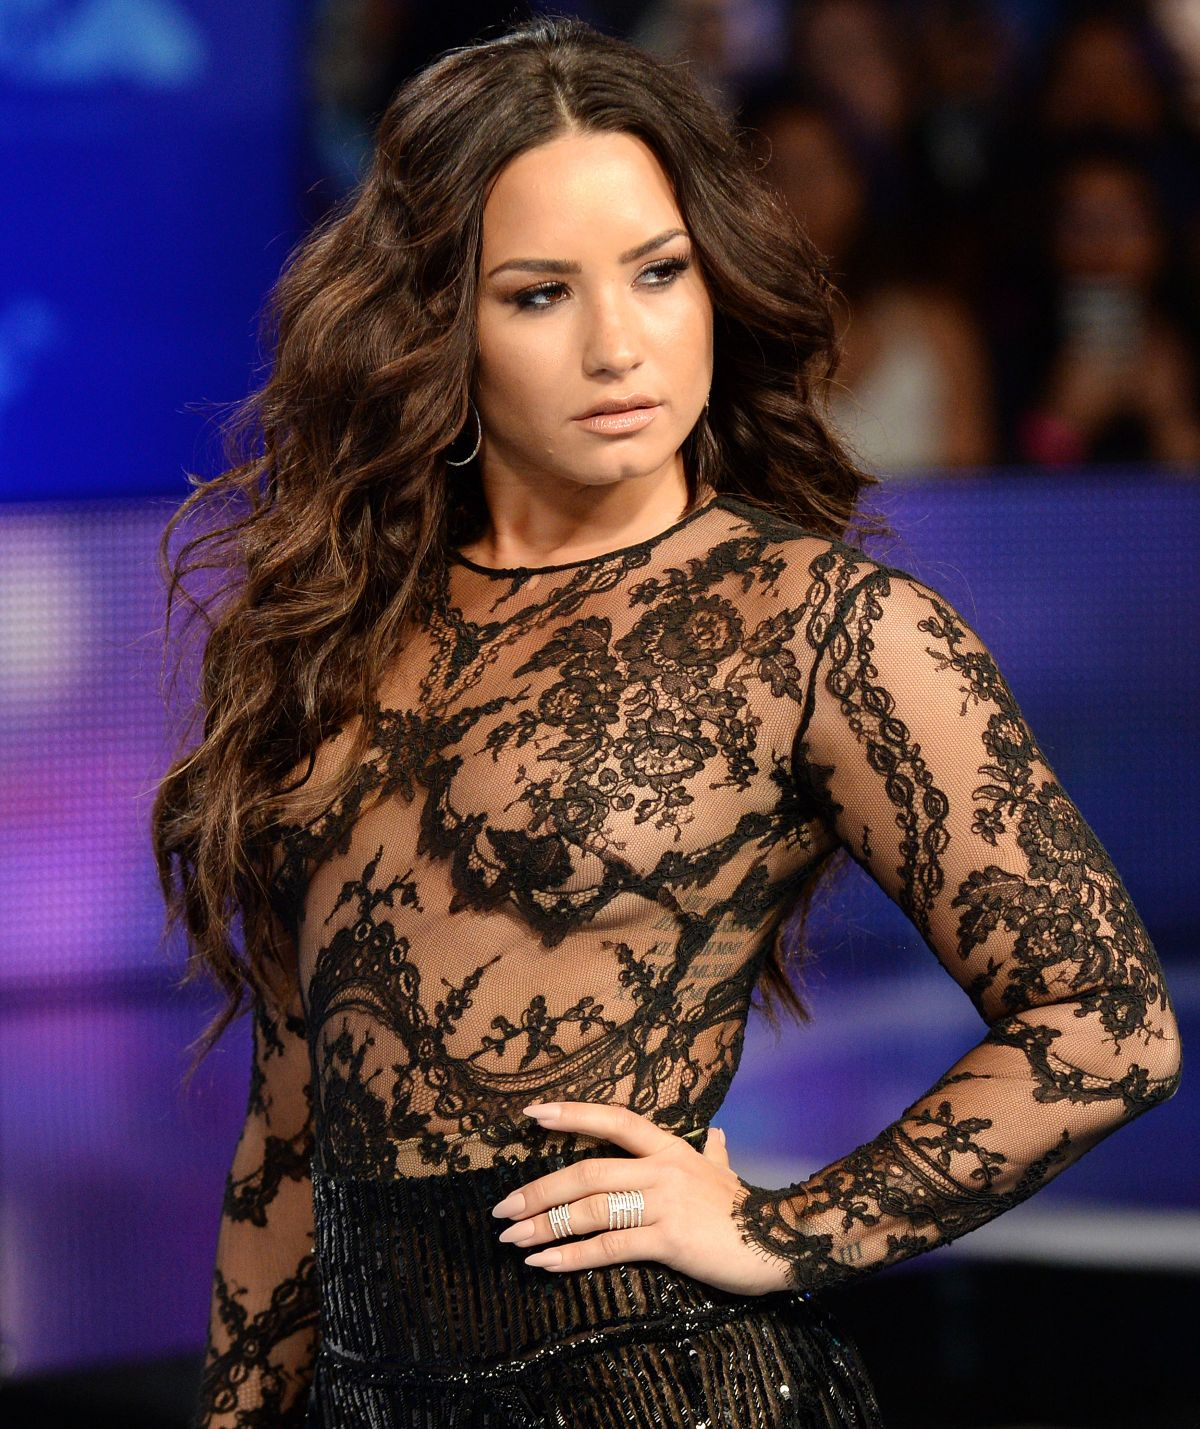 demi lovato - photo #3